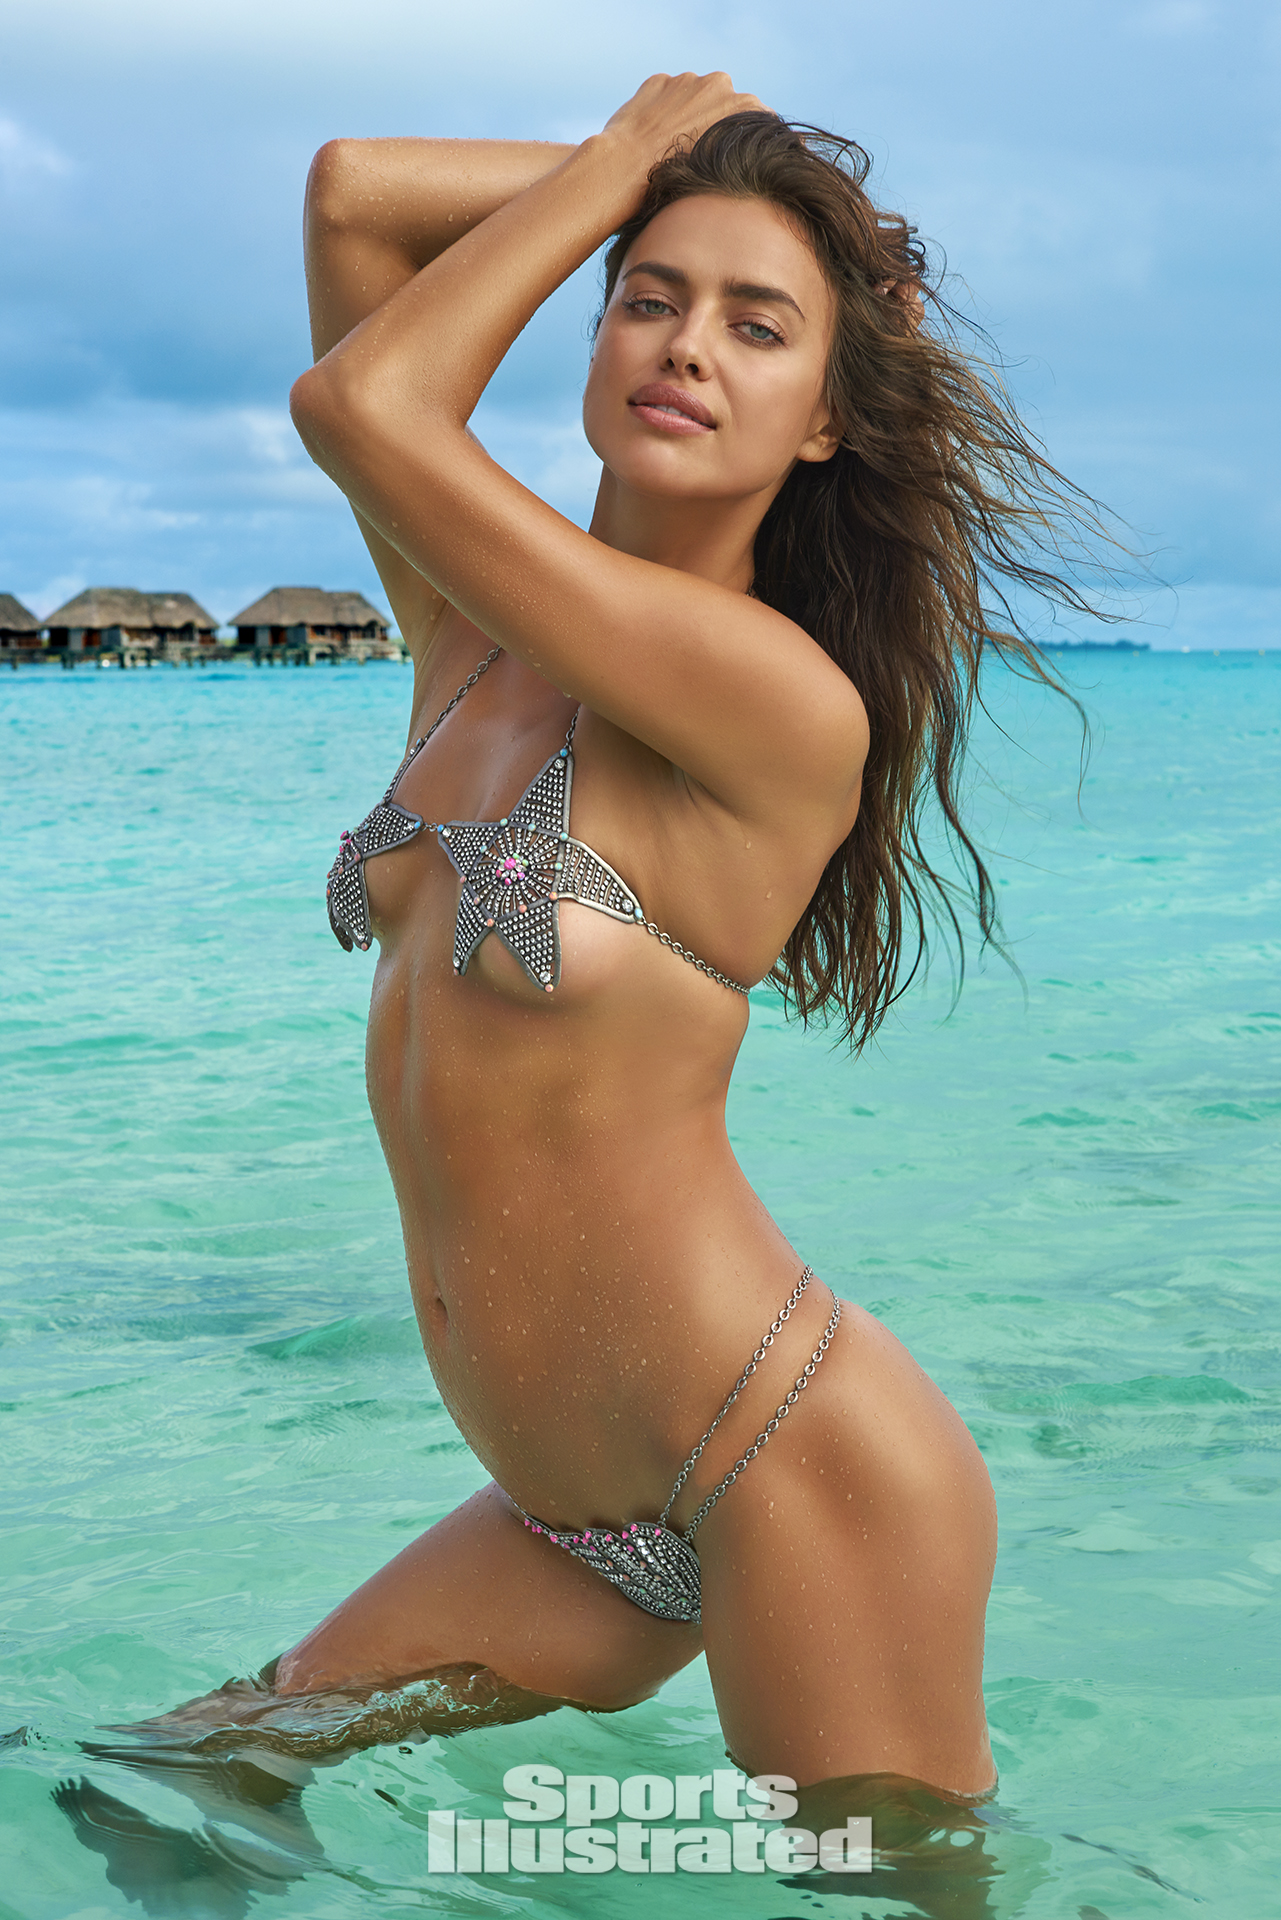 Irina Shayk was photographed by Yu Tsai in The Islands Of Tahiti. Swimsuit by Lionette By Noa Sade.